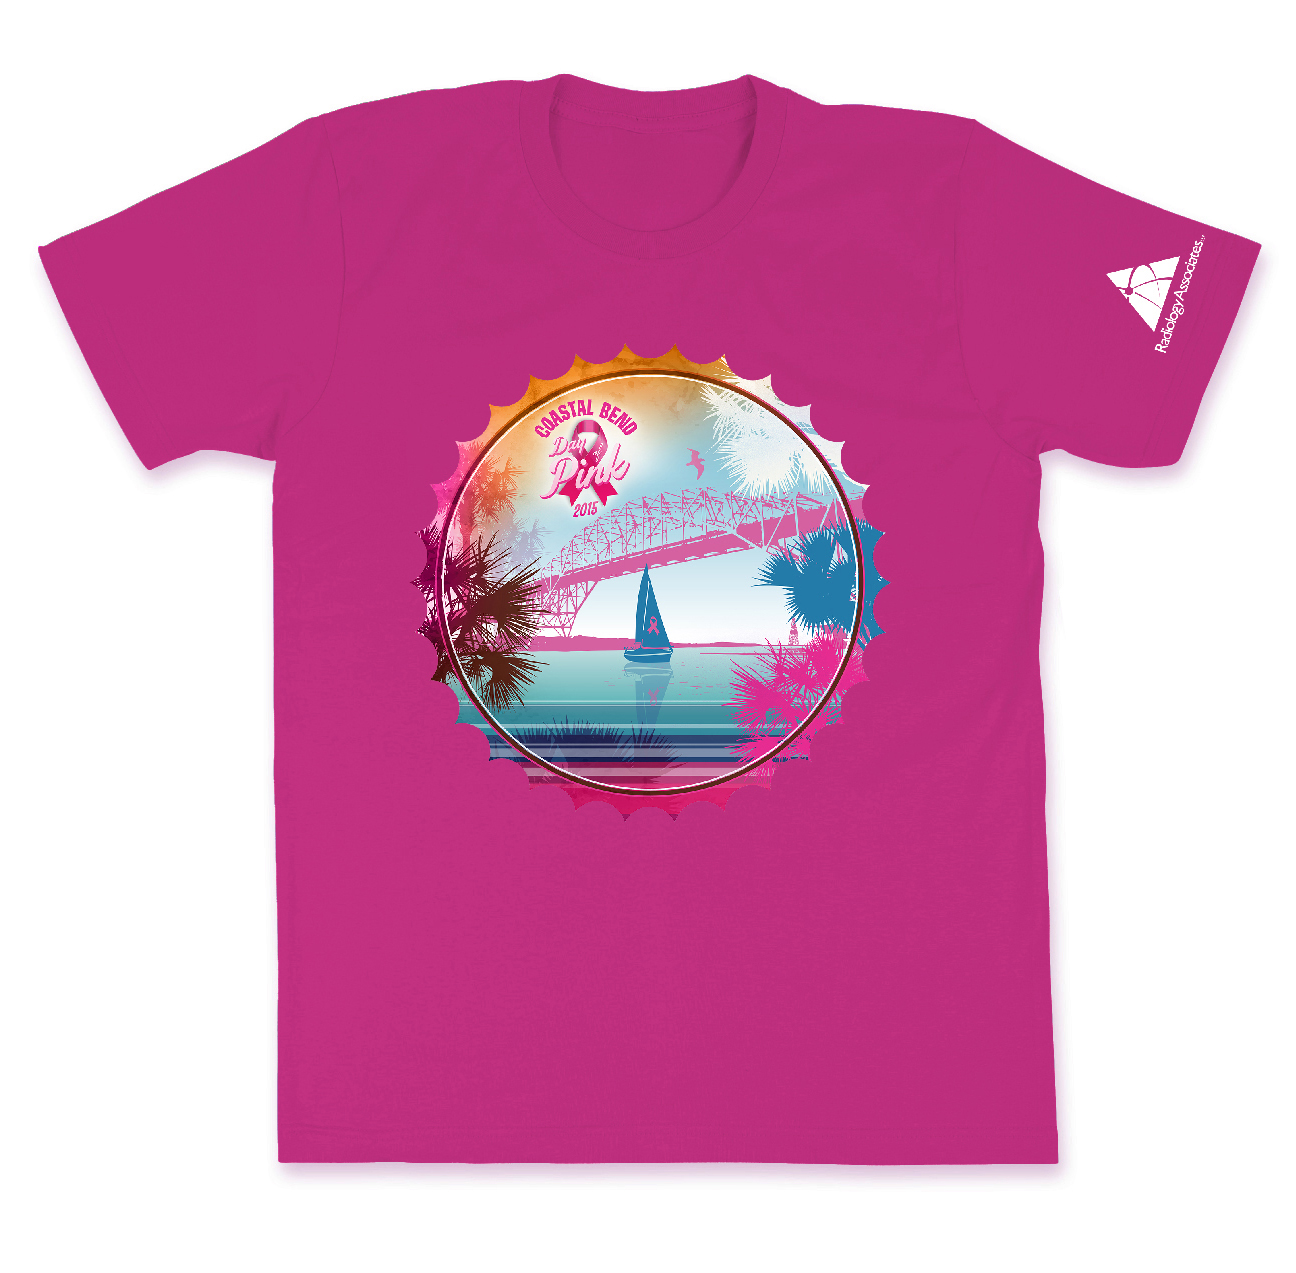 Coastal Bend Day of Pink t-shirt